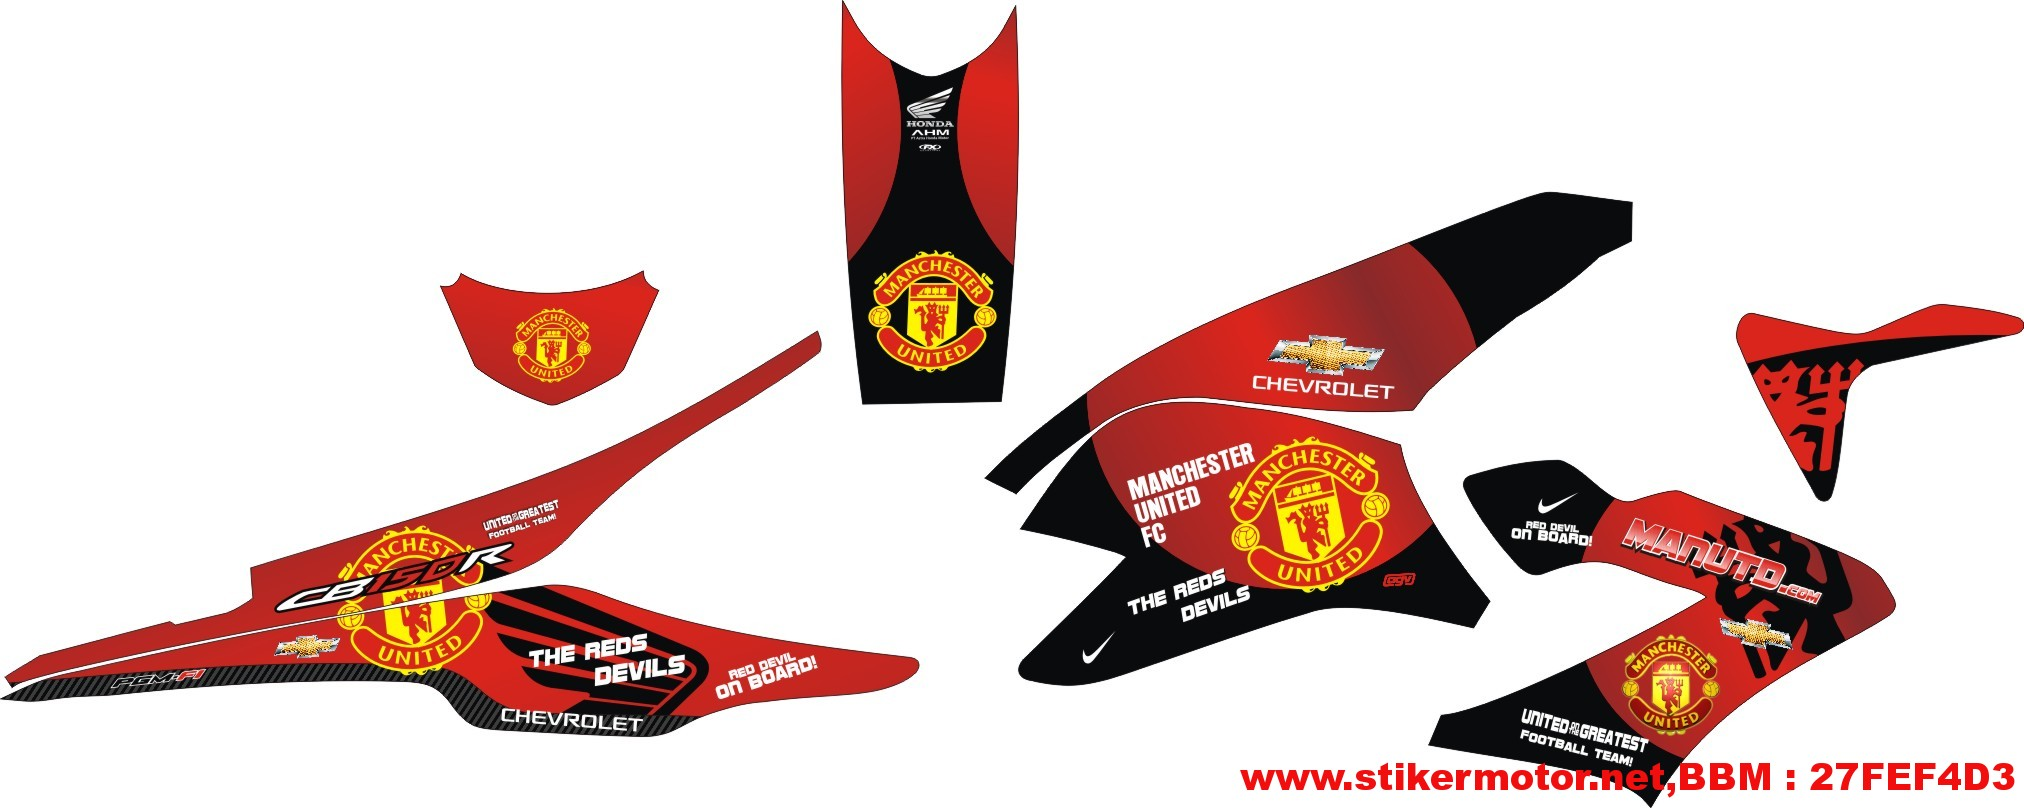 striping modifikasi honda cb150 Manchester United